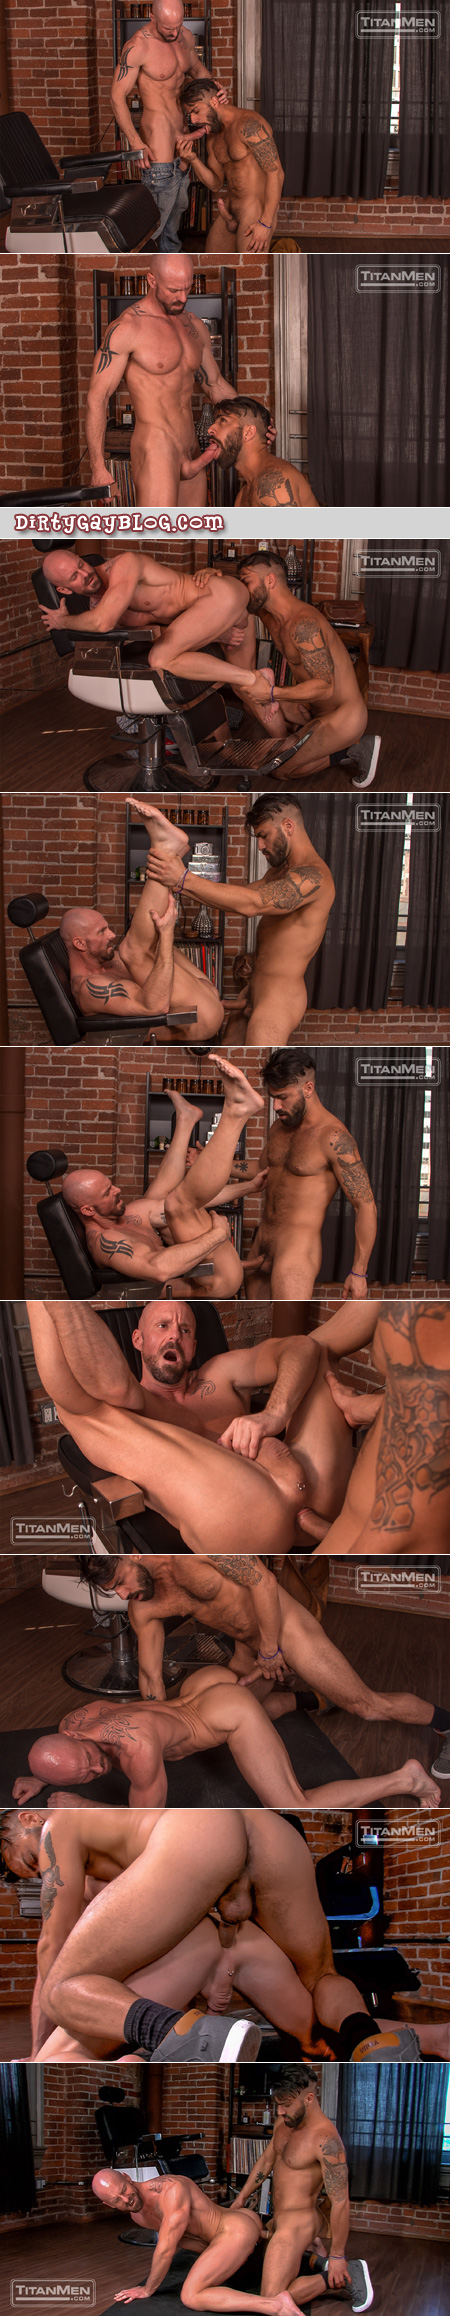 Muscular barber being fucked by his male client.